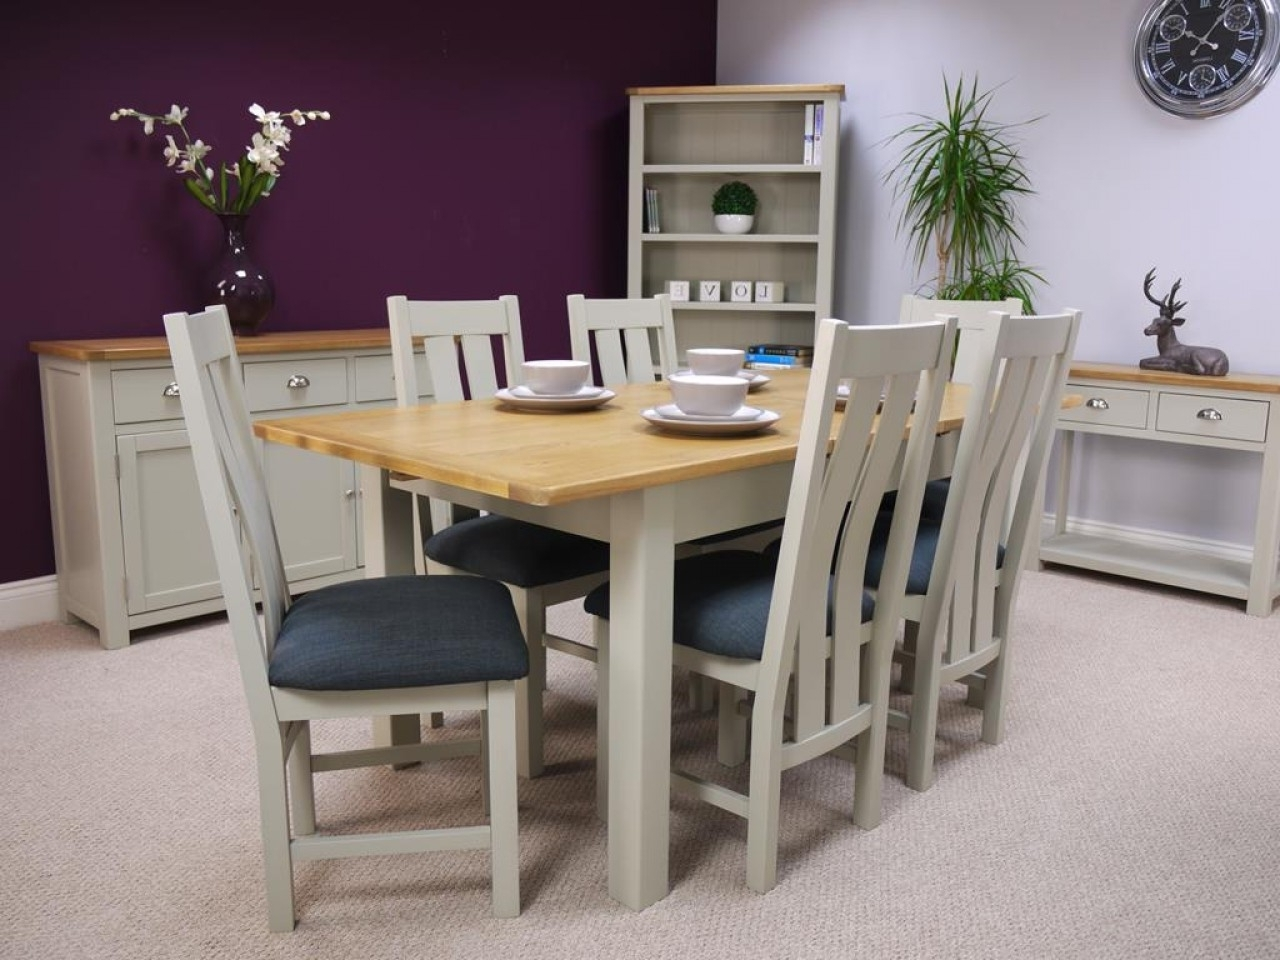 Dining Extending Tables And Chairs With Regard To Recent  (View 11 of 25)